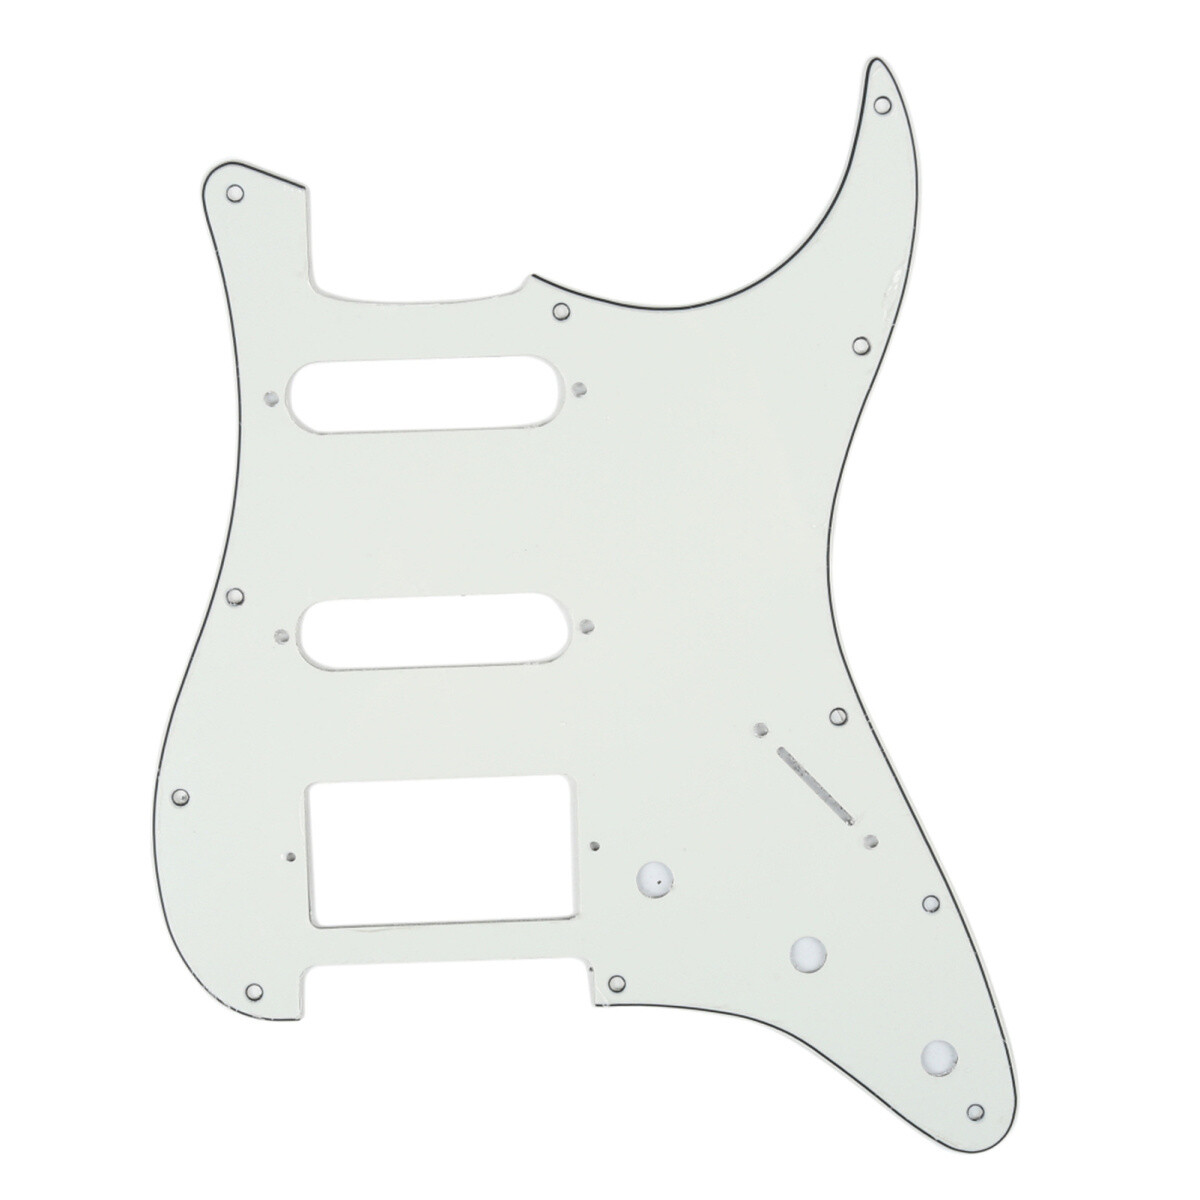 11 Hole Strat Pickguard for Fender US/Mexico Made Standard Stratocaster Modern Style, 3ply Aged White [Parchment]